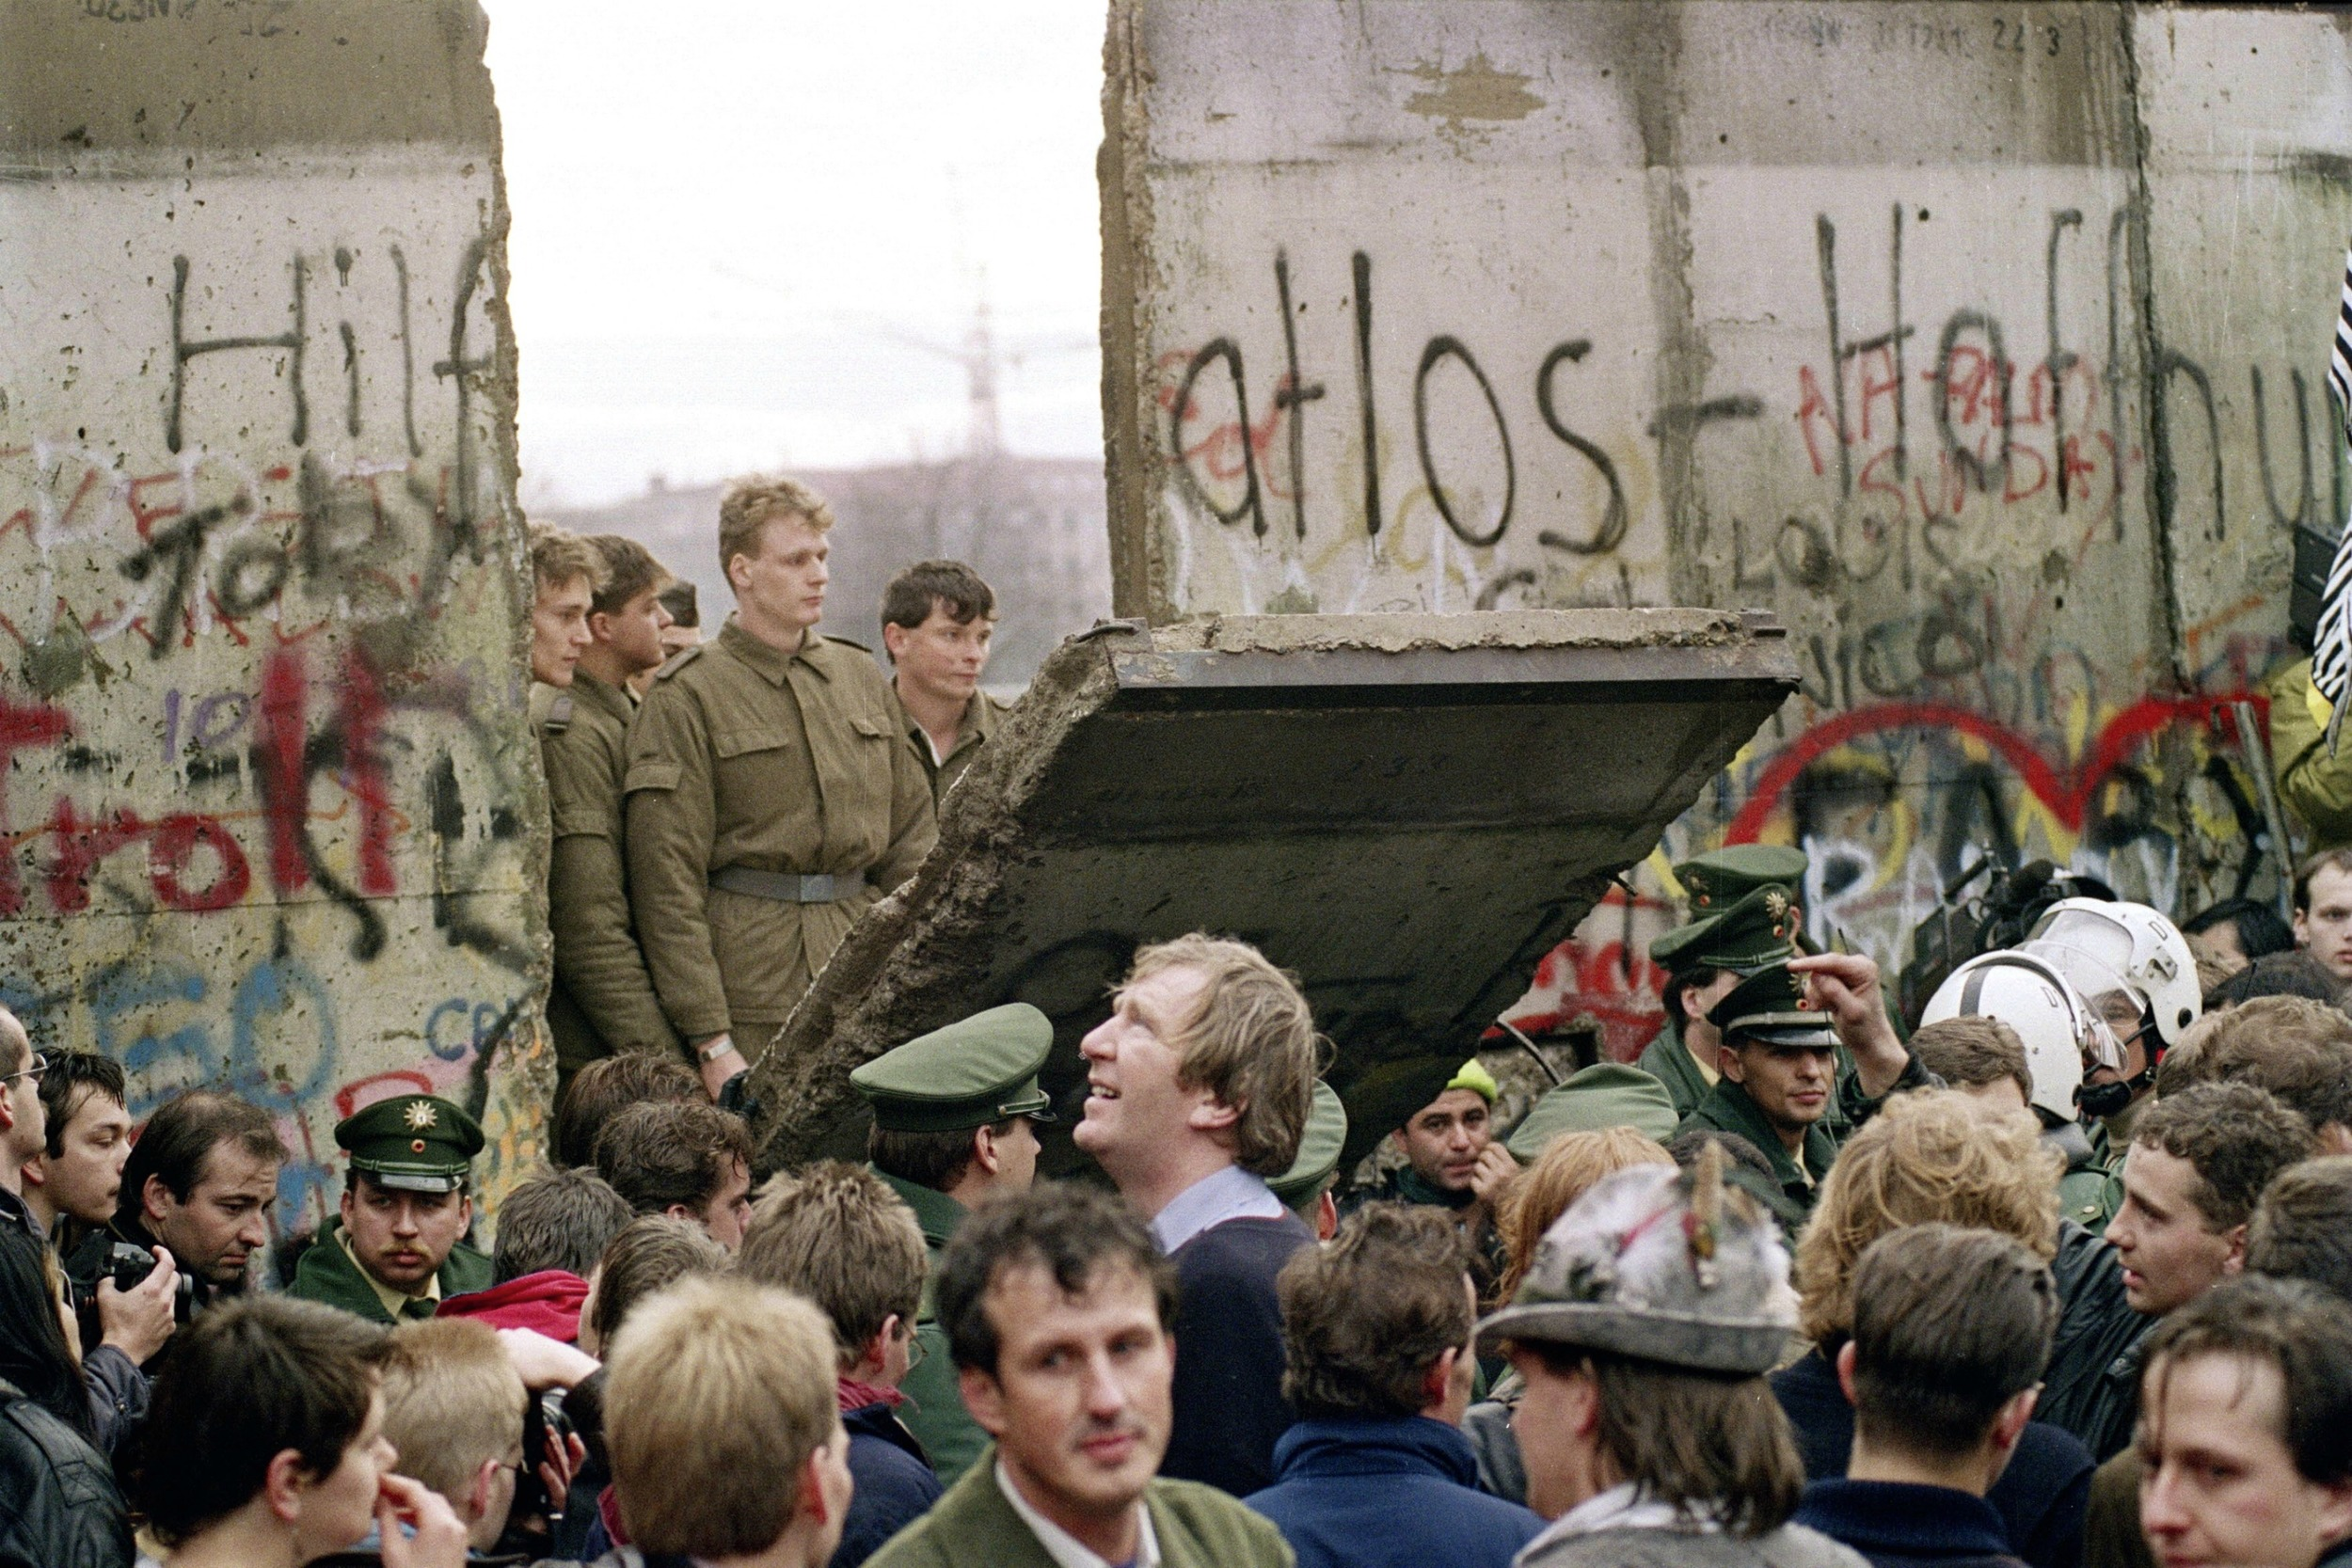 The Berlin Wall comes down - East German soldiers look on